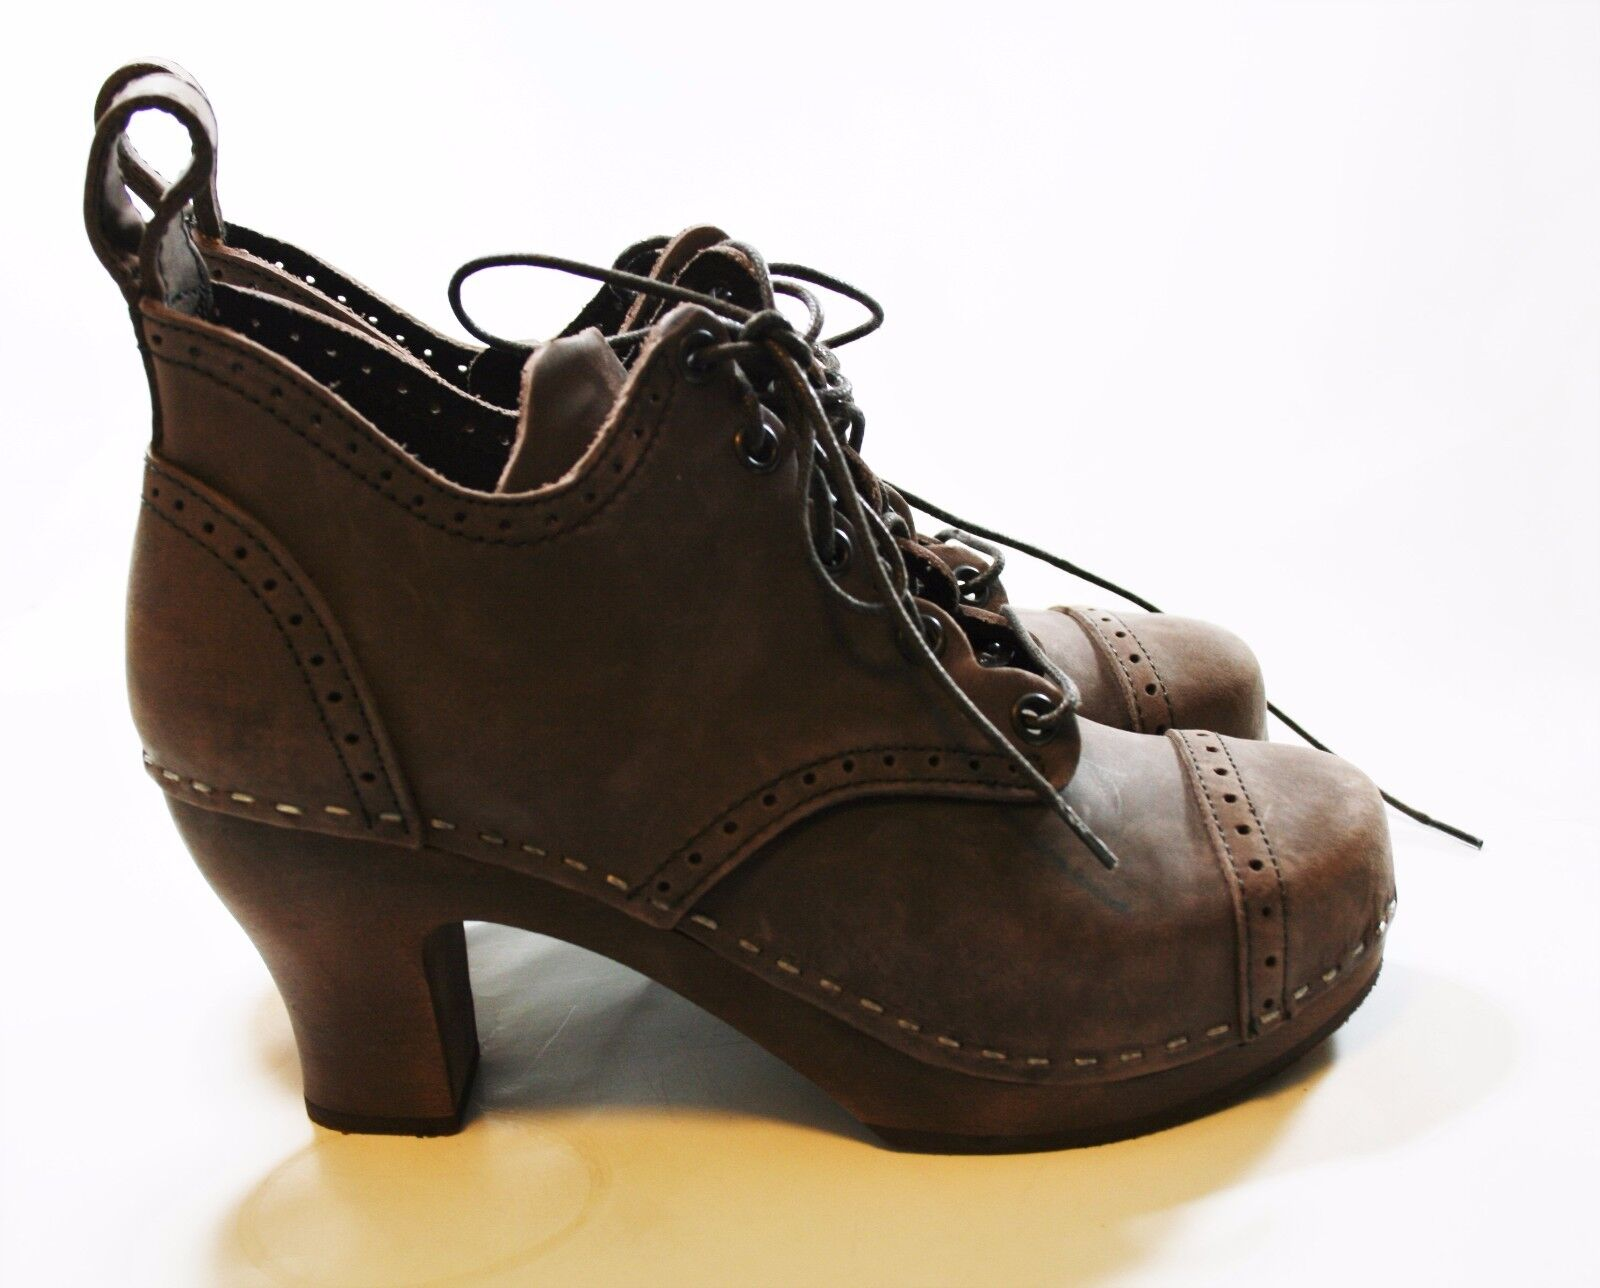 SWEDISH HASBEENS SHOES 1910 LACE LACE LACE UP CLOG BOOTIES BROWN NUBUCK LEATHER 36  389 f73bc8